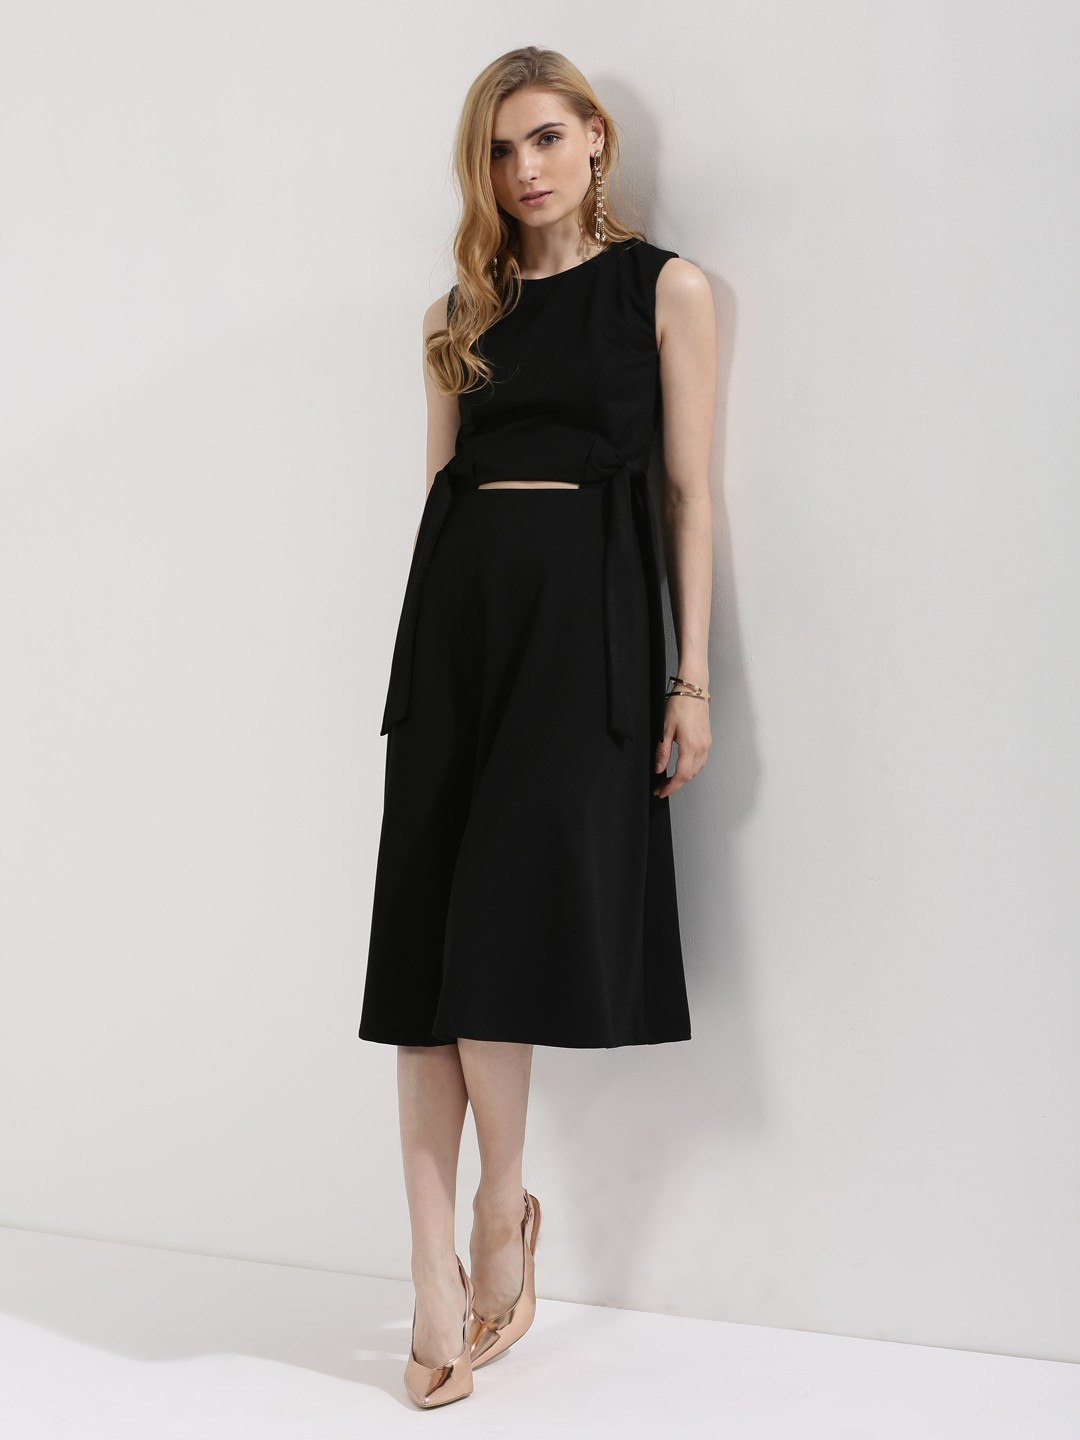 Origami Lily Black Midi Dress With Waist Cut Out And Bow Detailing 1